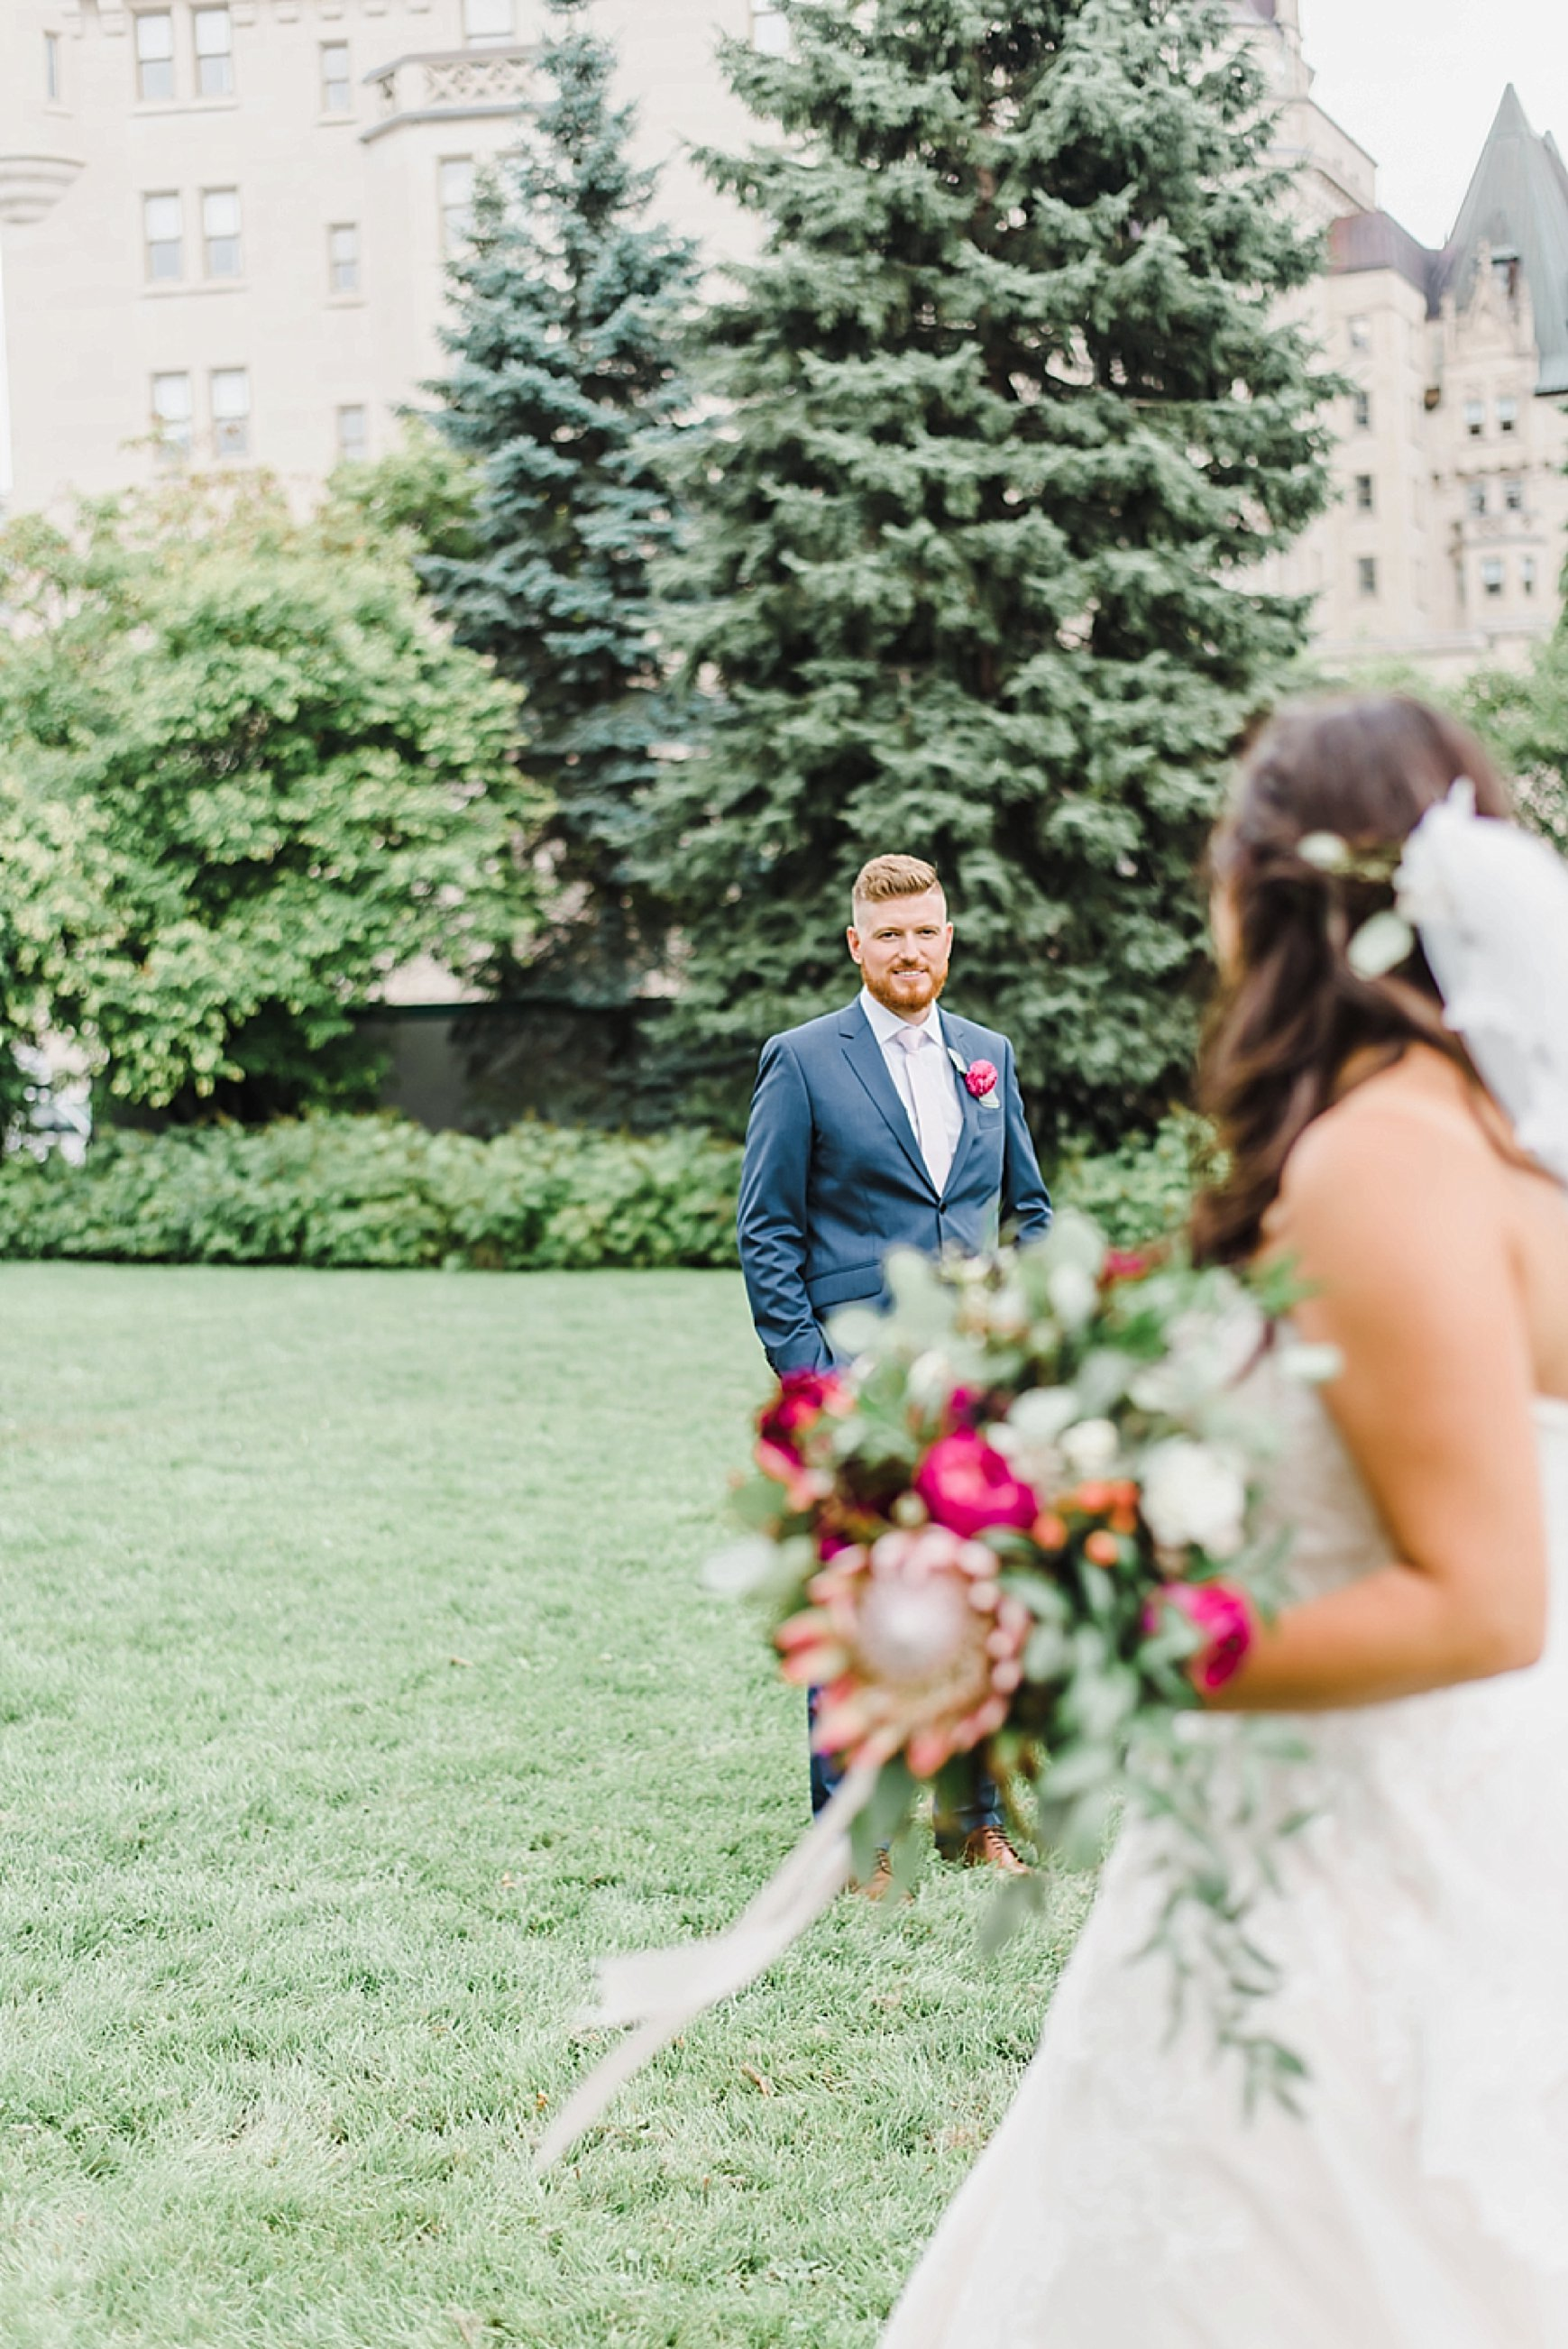 light airy indie fine art ottawa wedding photographer | Ali and Batoul Photography_1639.jpg